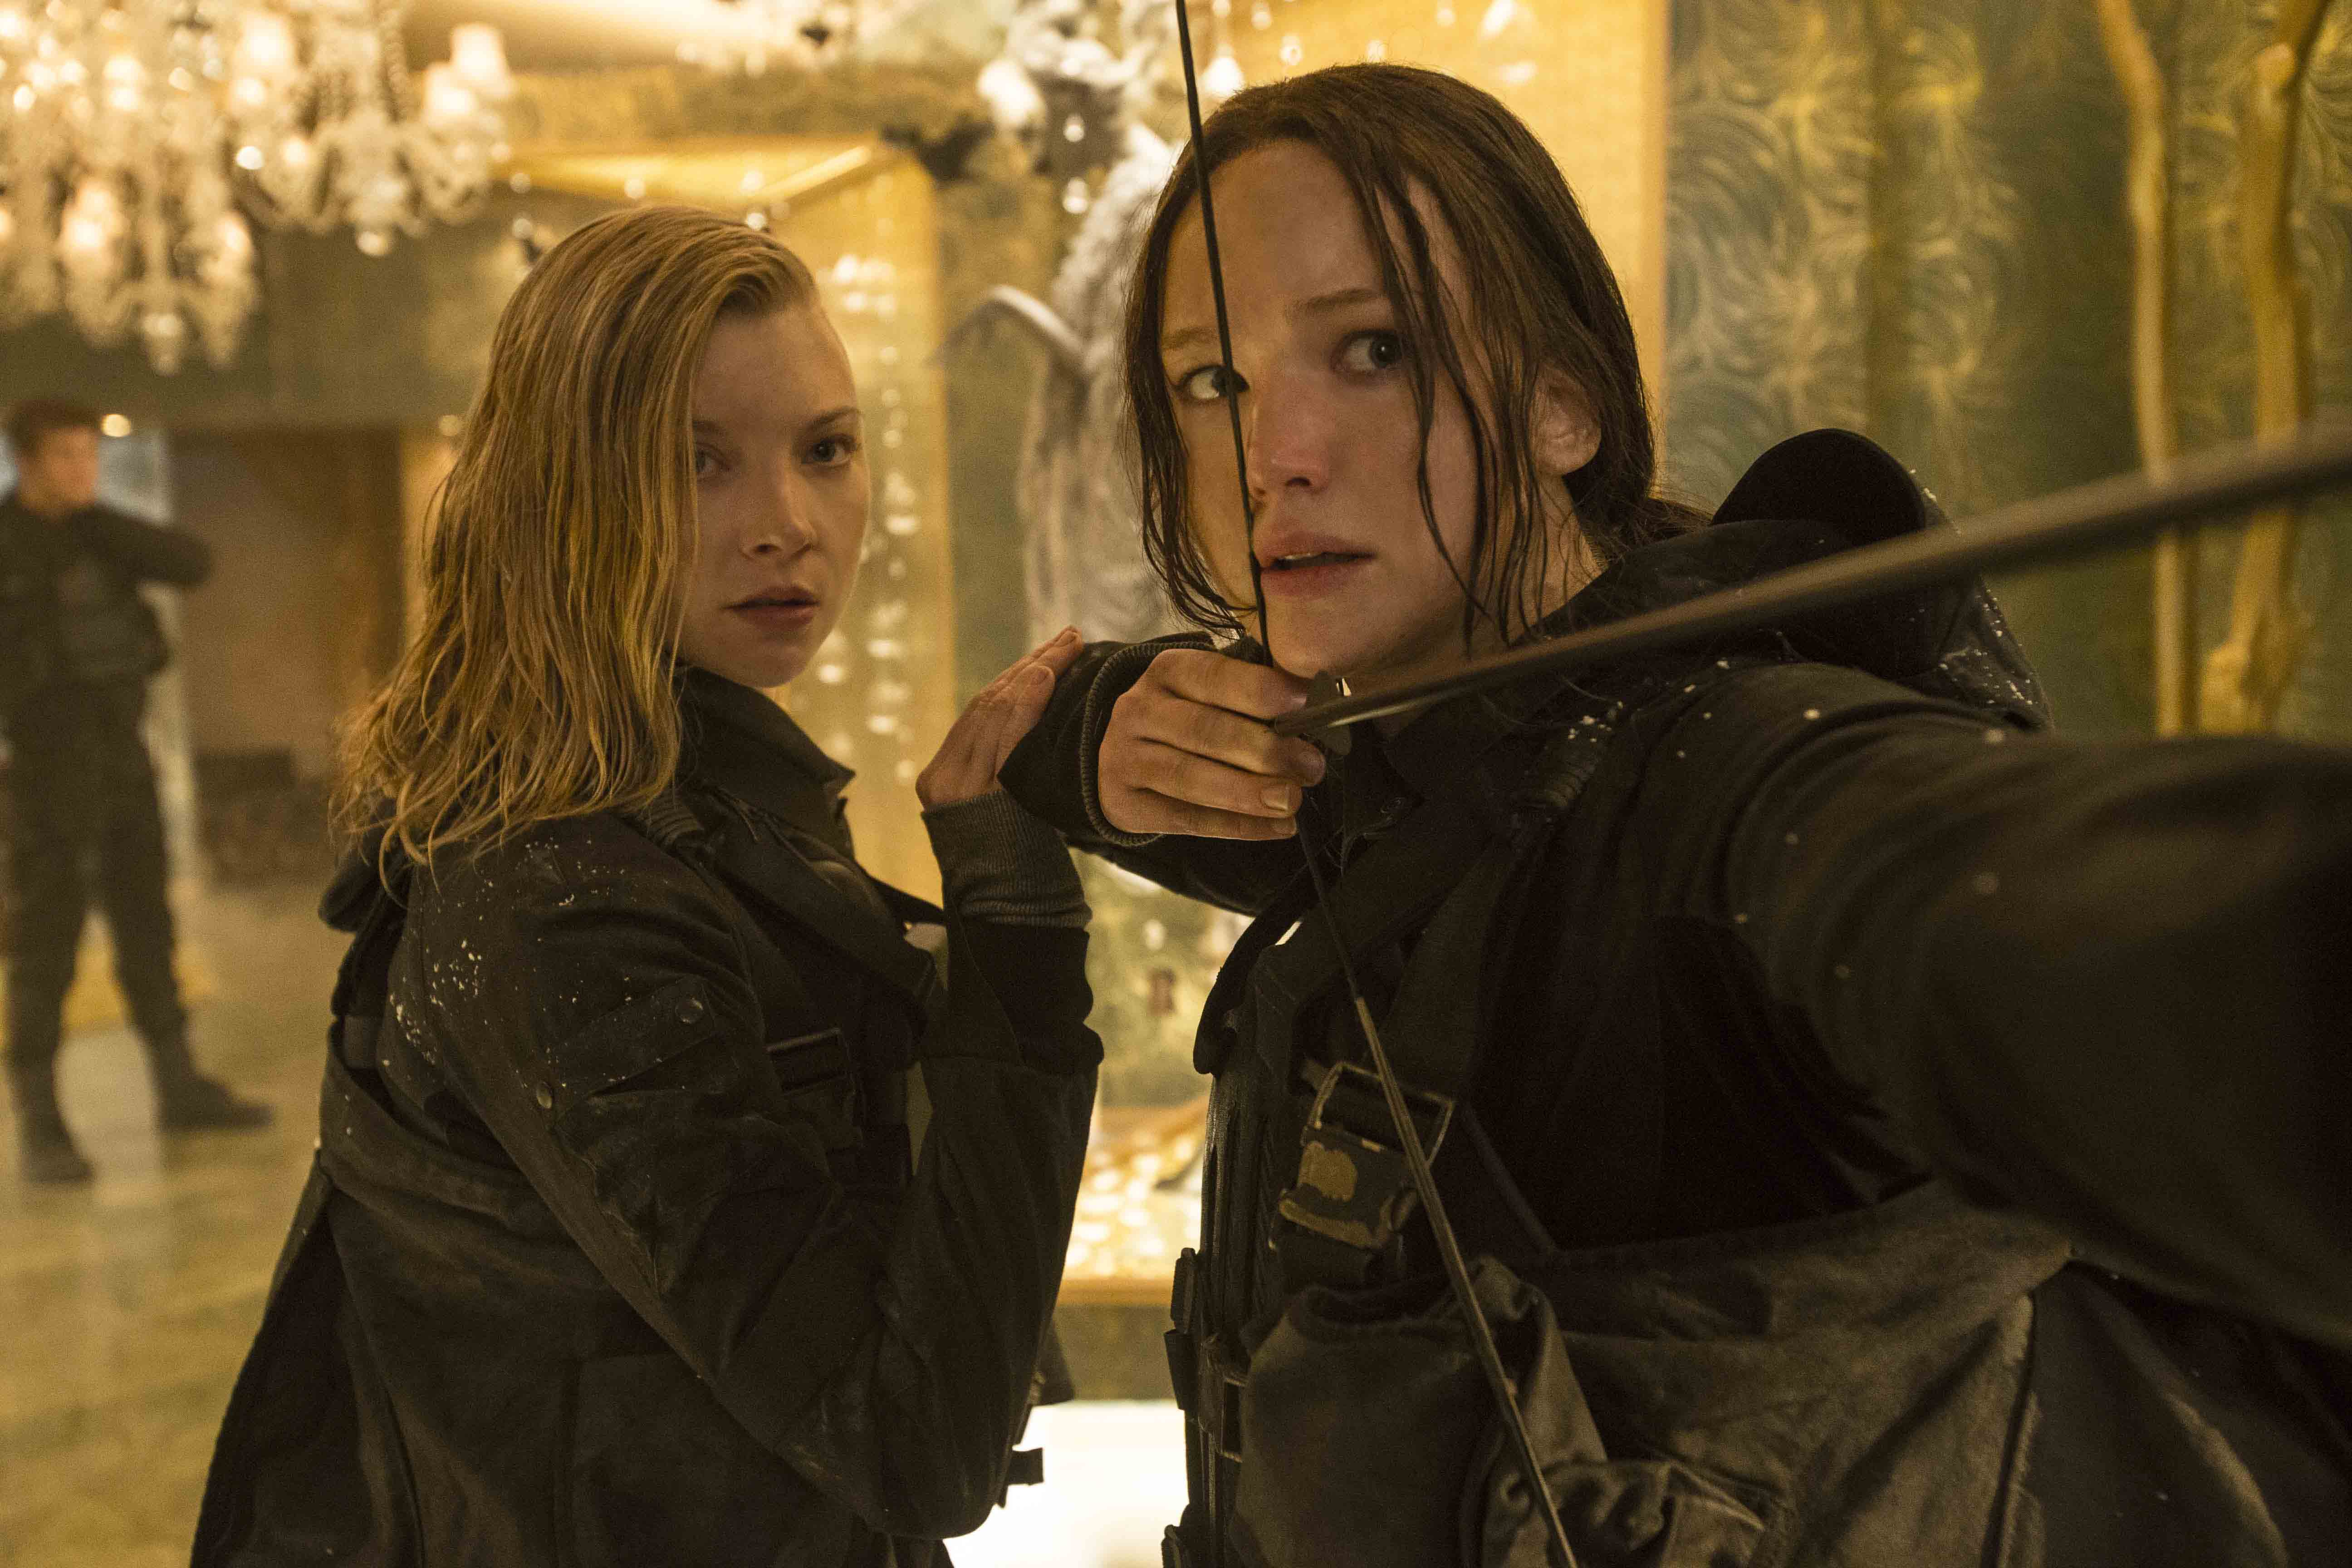 Hunger Games Mockingjay Part 2 movie review by Lauren Steffany